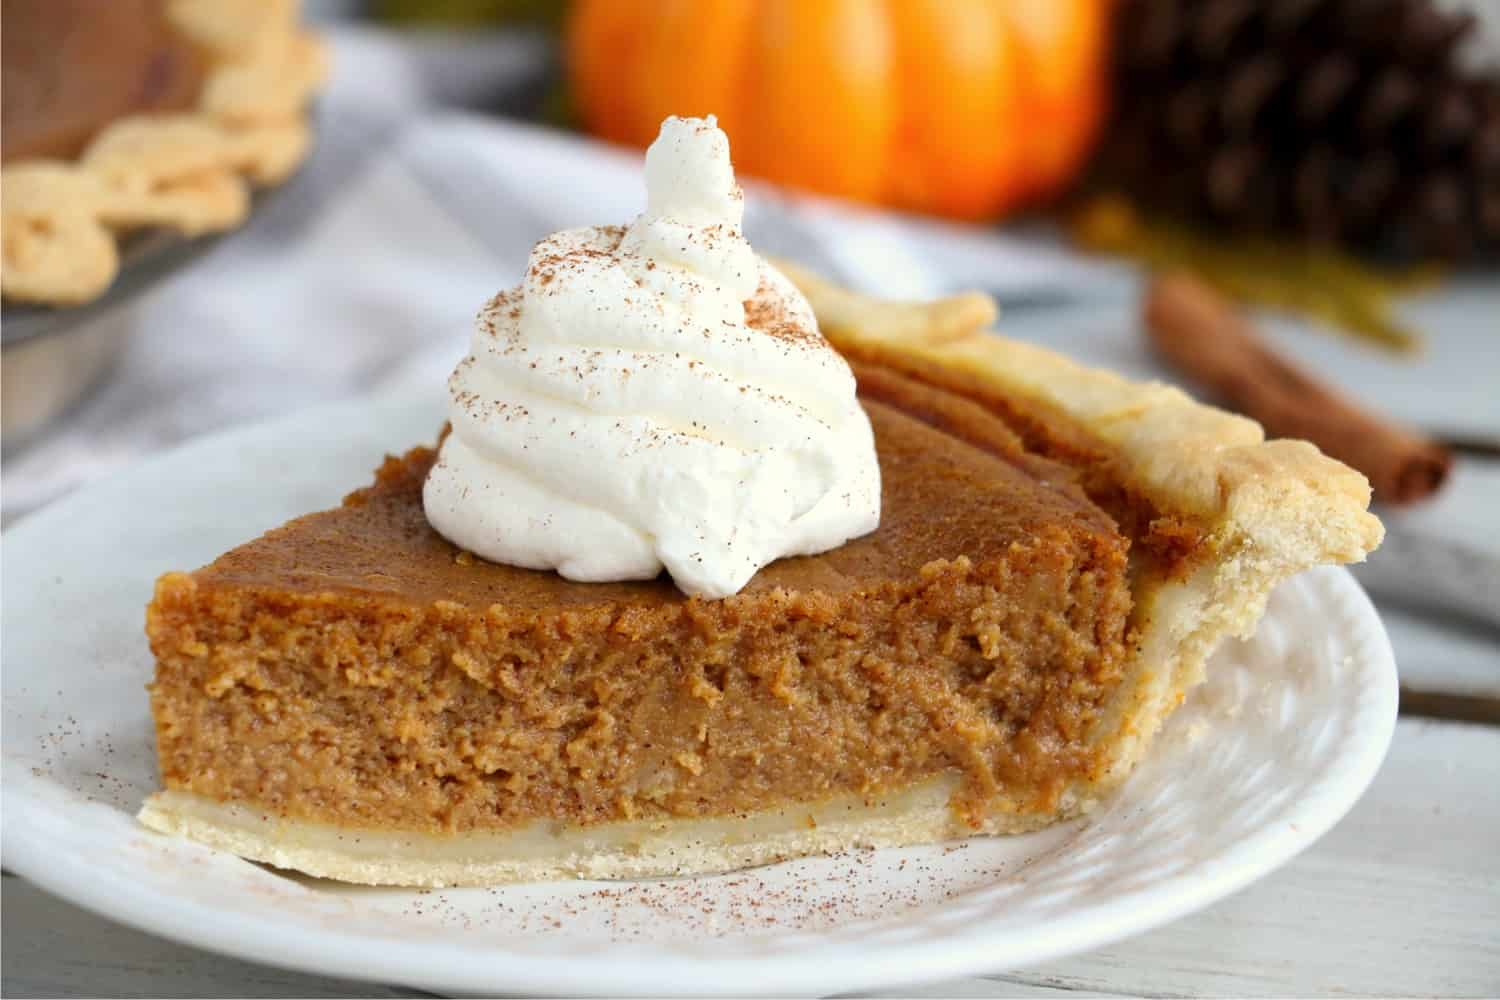 A piece of pumpkin pie on a white plate, surrounded by fall decorations.